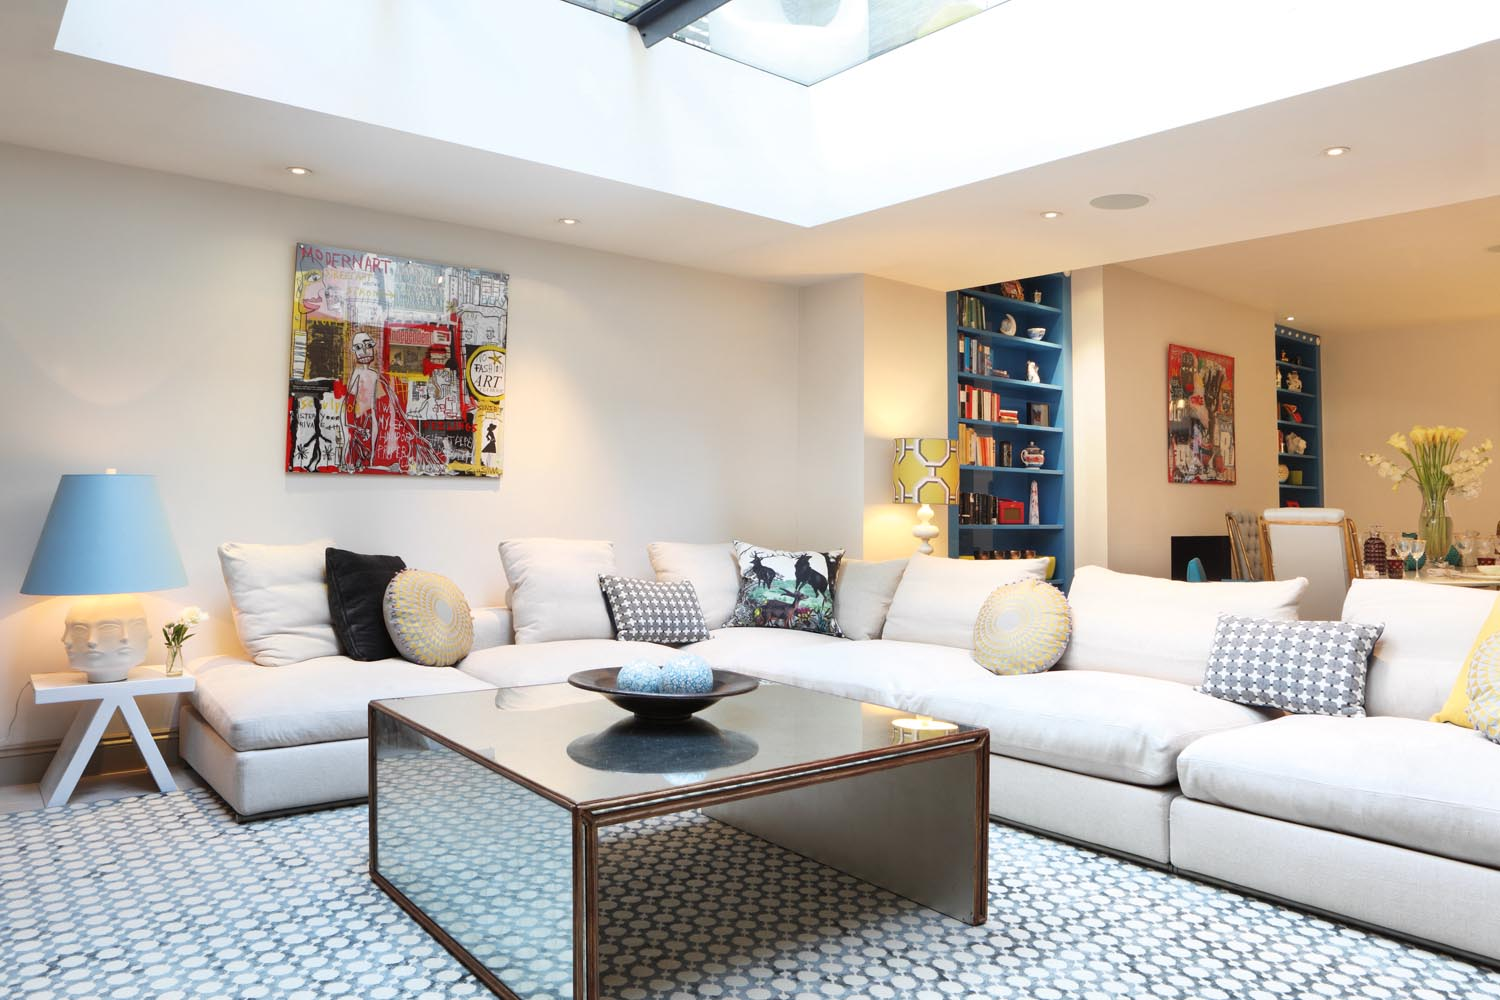 A mirrored coffee table brings a touch of glamour to the living room